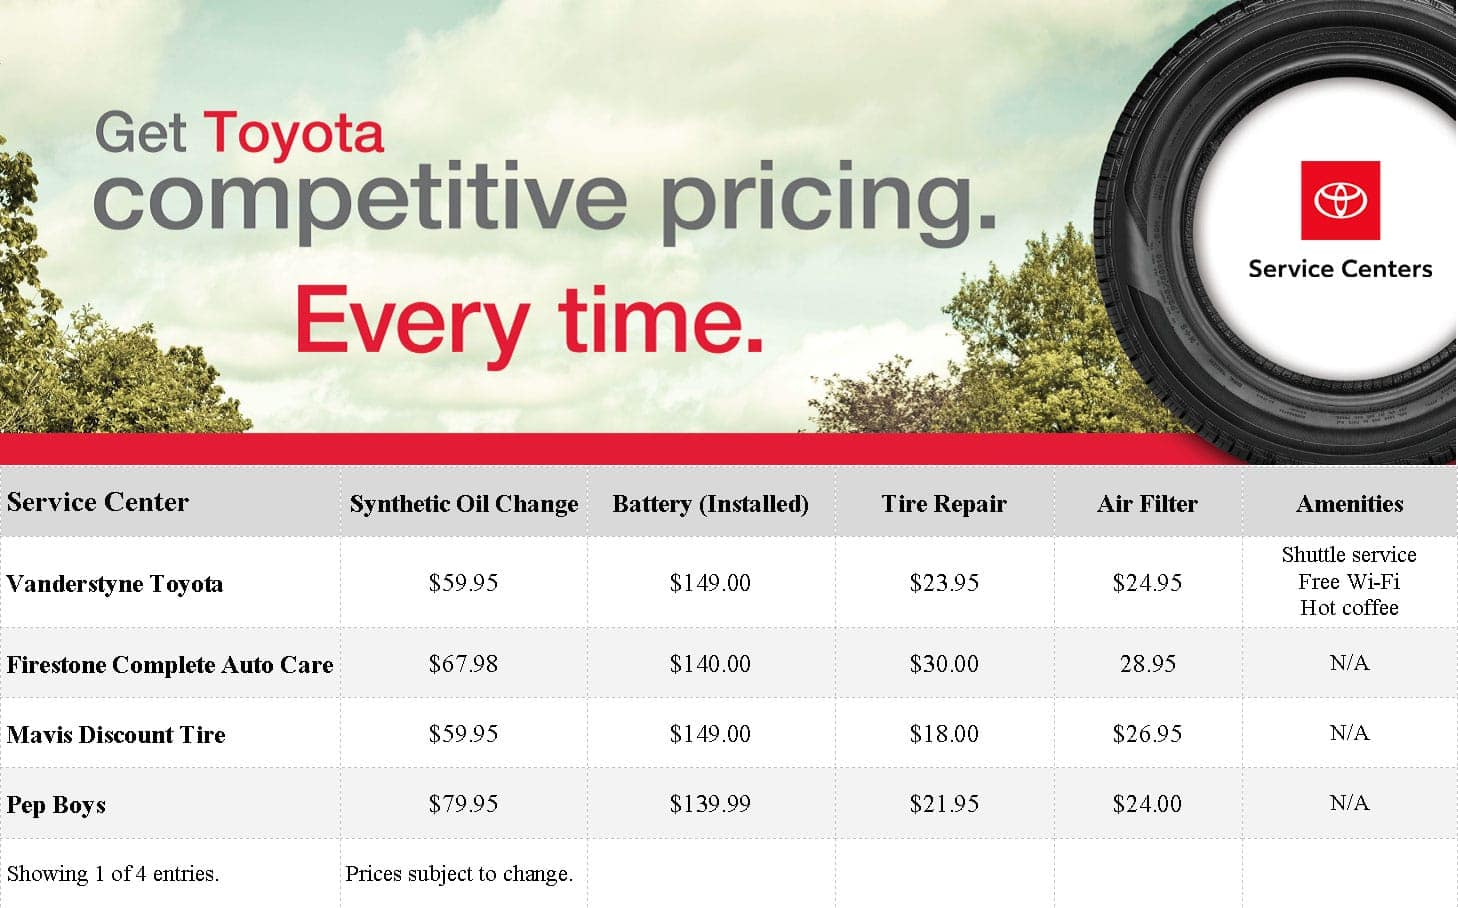 Vanderstyne-Toyota-Dare-to-Compare-Competitive-Pricing-edit